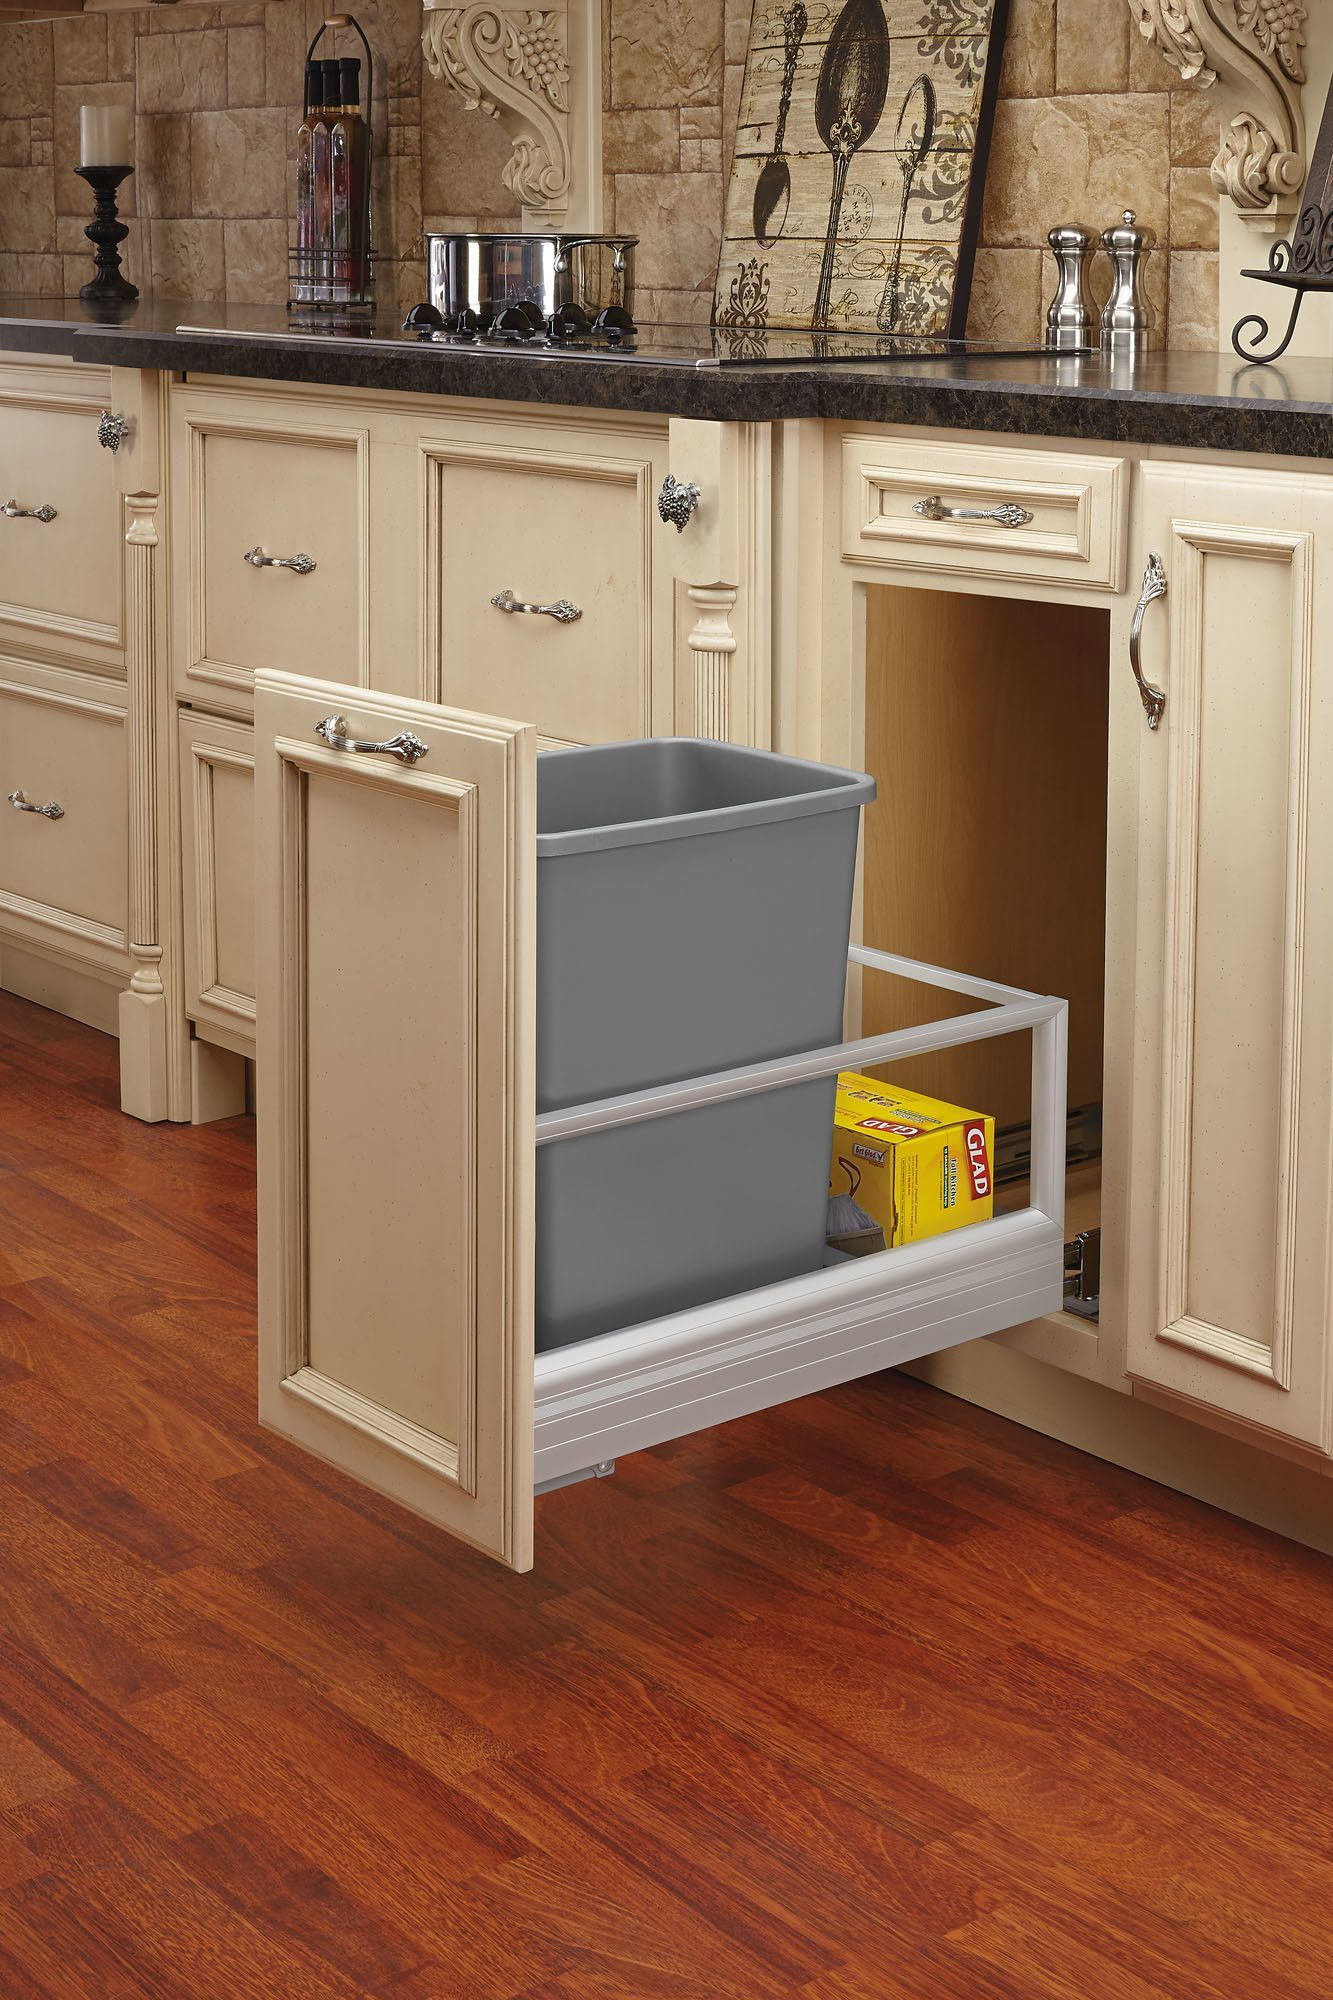 Rev A Shelf 22 35 Quart Pullout Waste Container Kitchen Design Kitchen Cabinet Design Kitchen Design Small